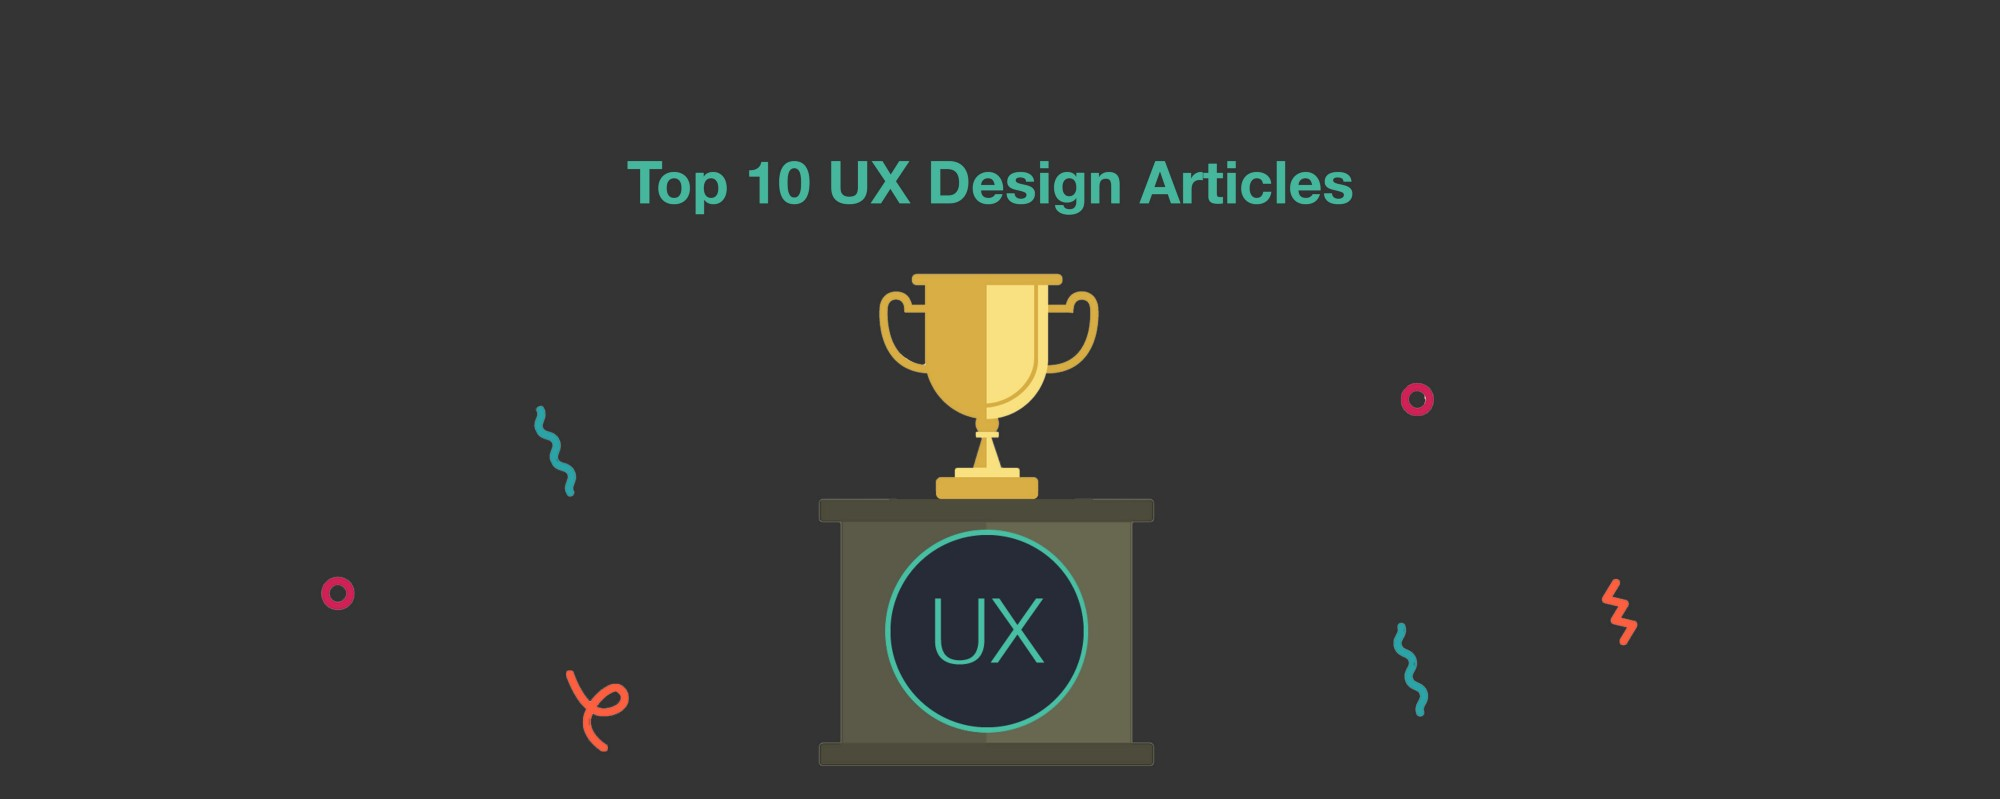 Top 10 UX Design Articles For the Past Month.